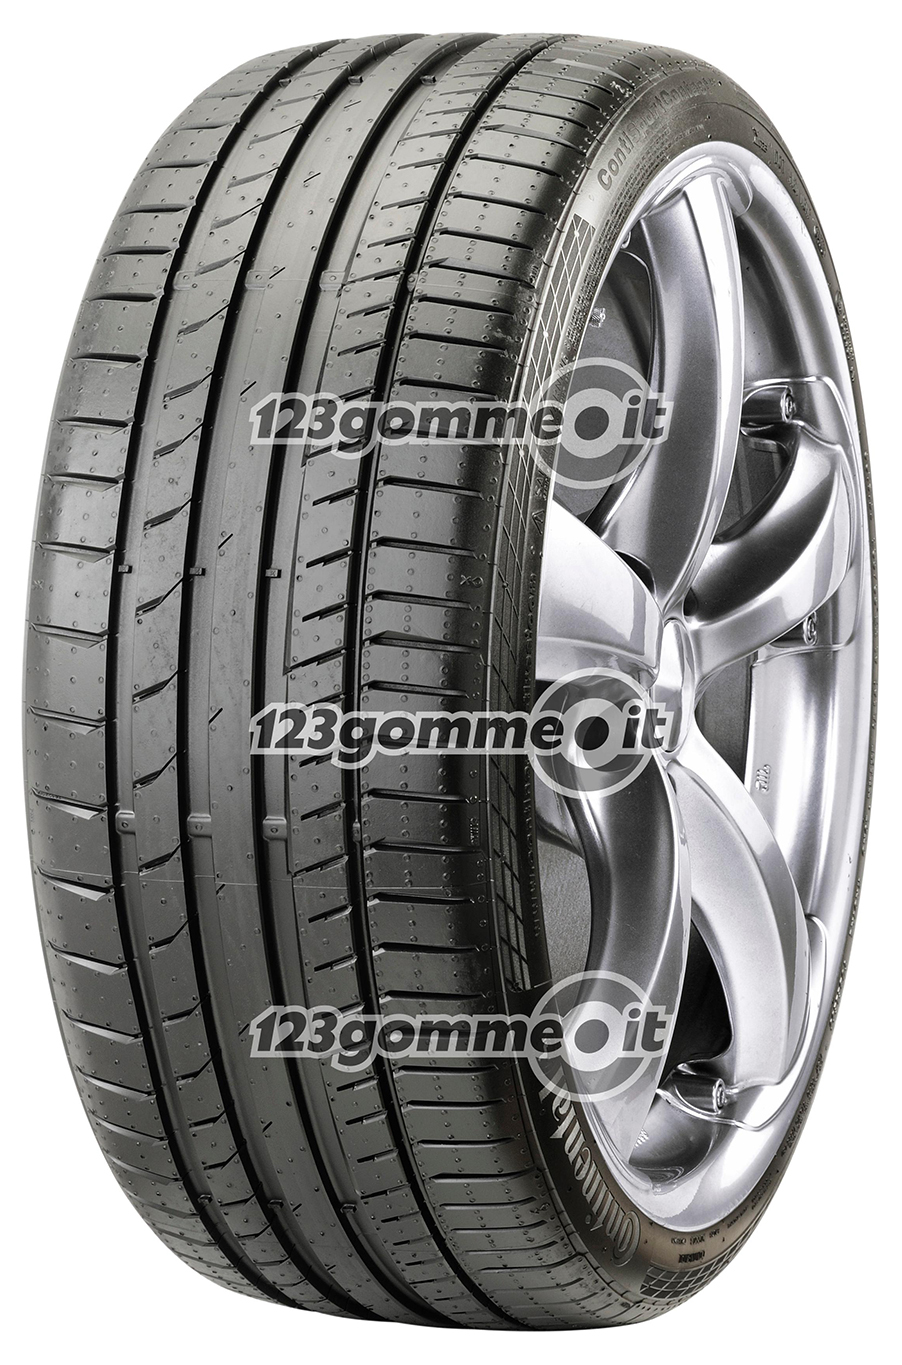 265/35 ZR19 (98Y) SportContact 5 P XL MO FR  SportContact 5 P XL MO FR